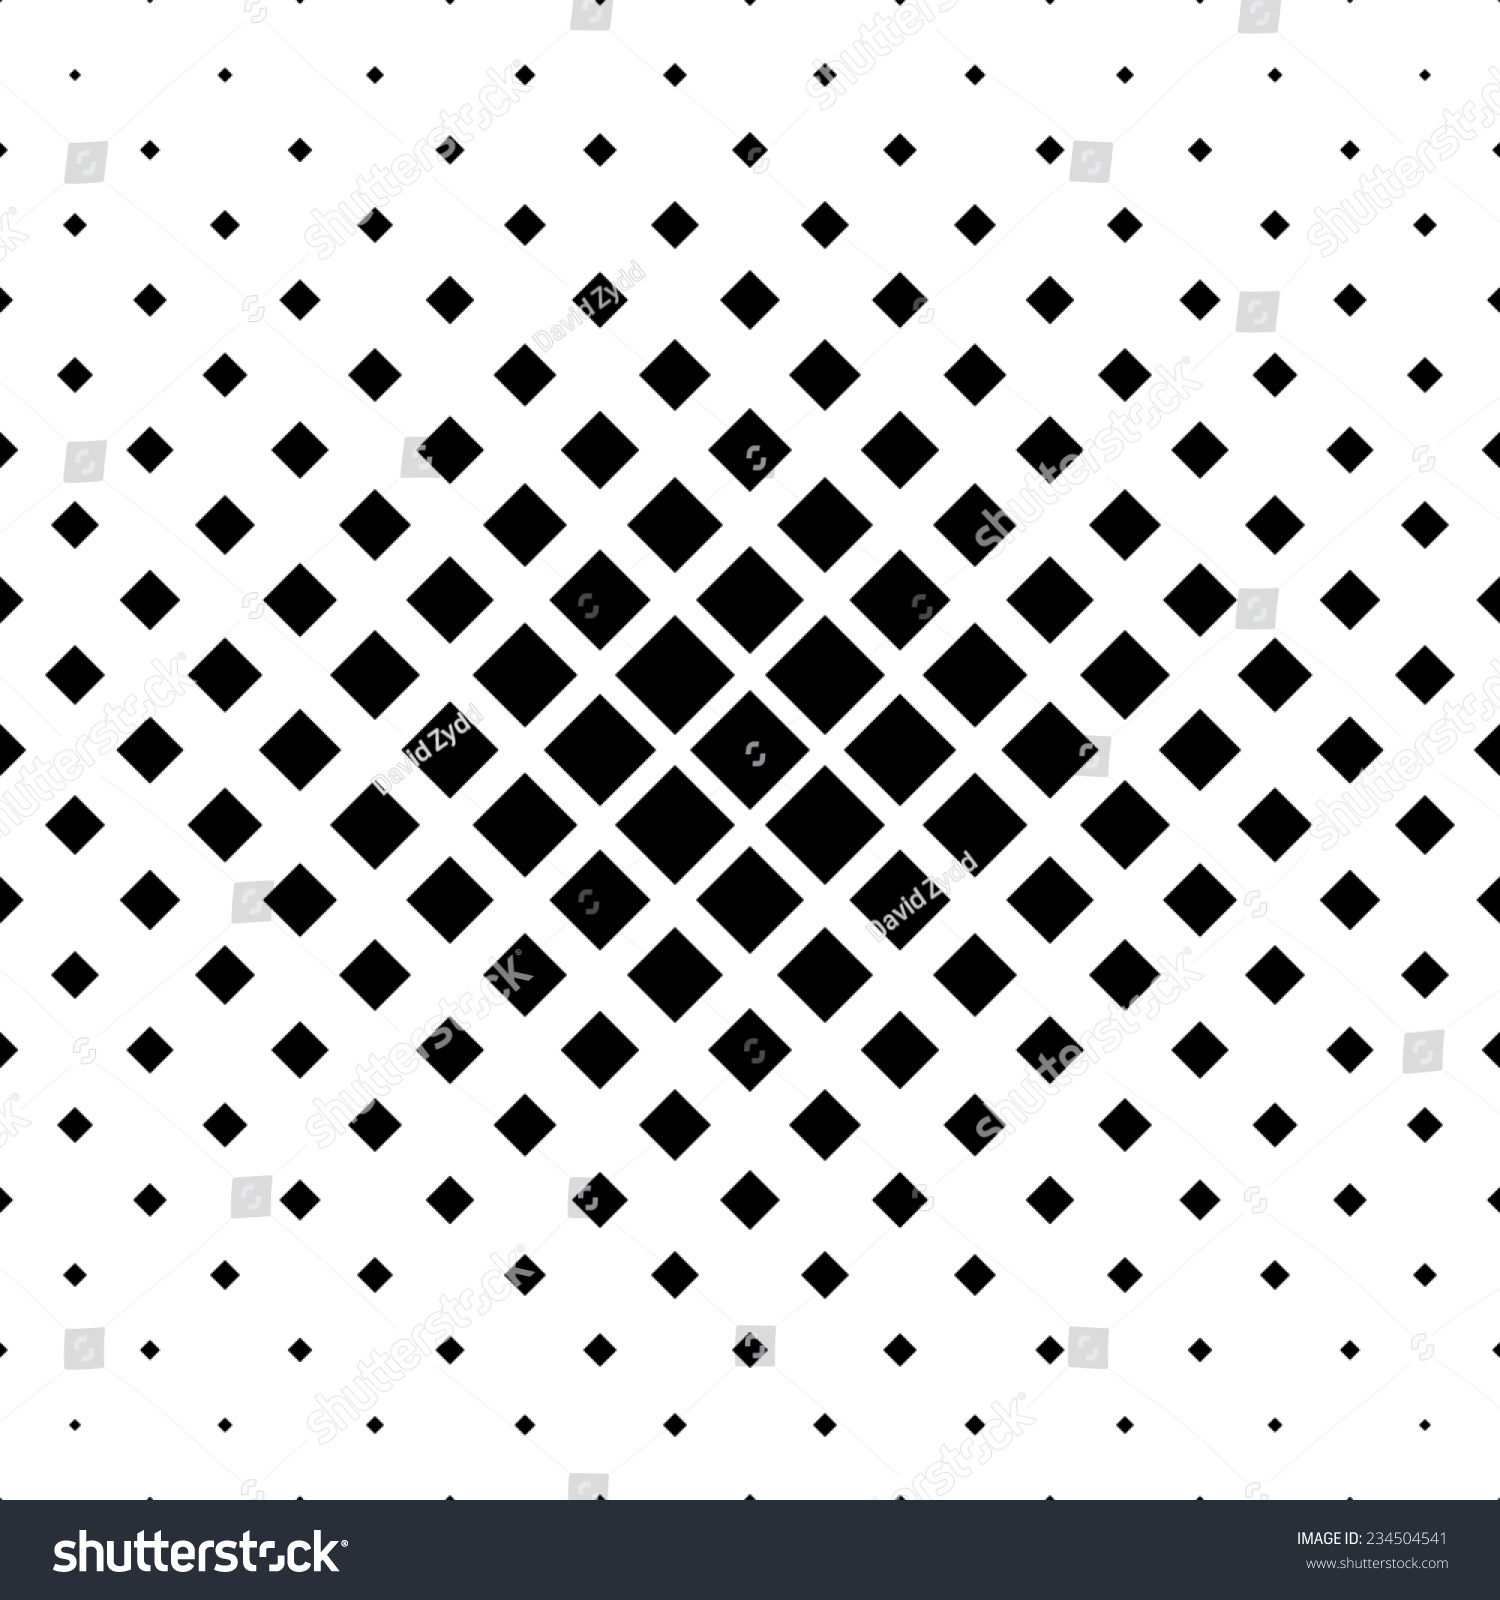 Square Patterns Vector